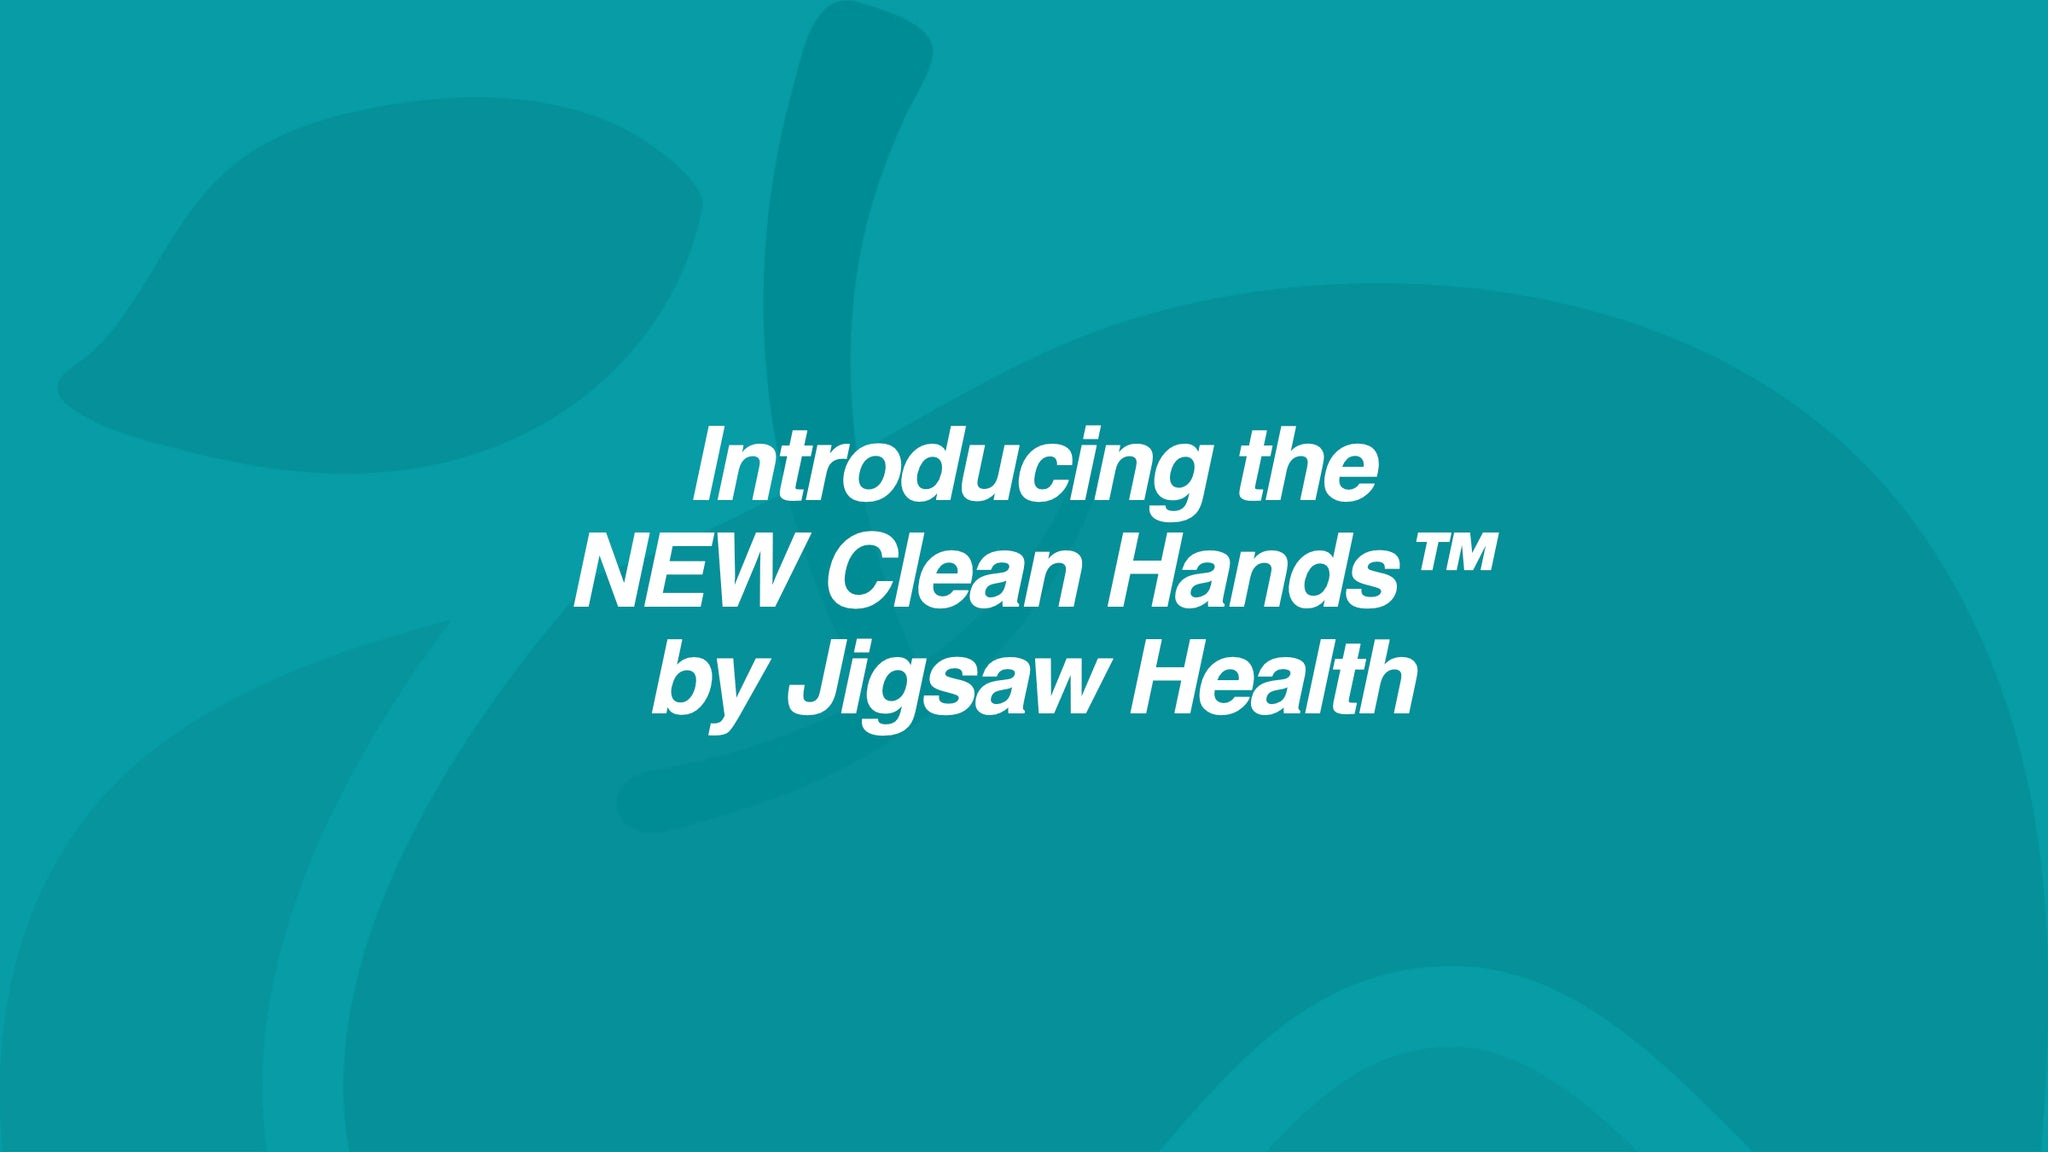 Introducing the NEW Clean Hands™ from Jigsaw Health...